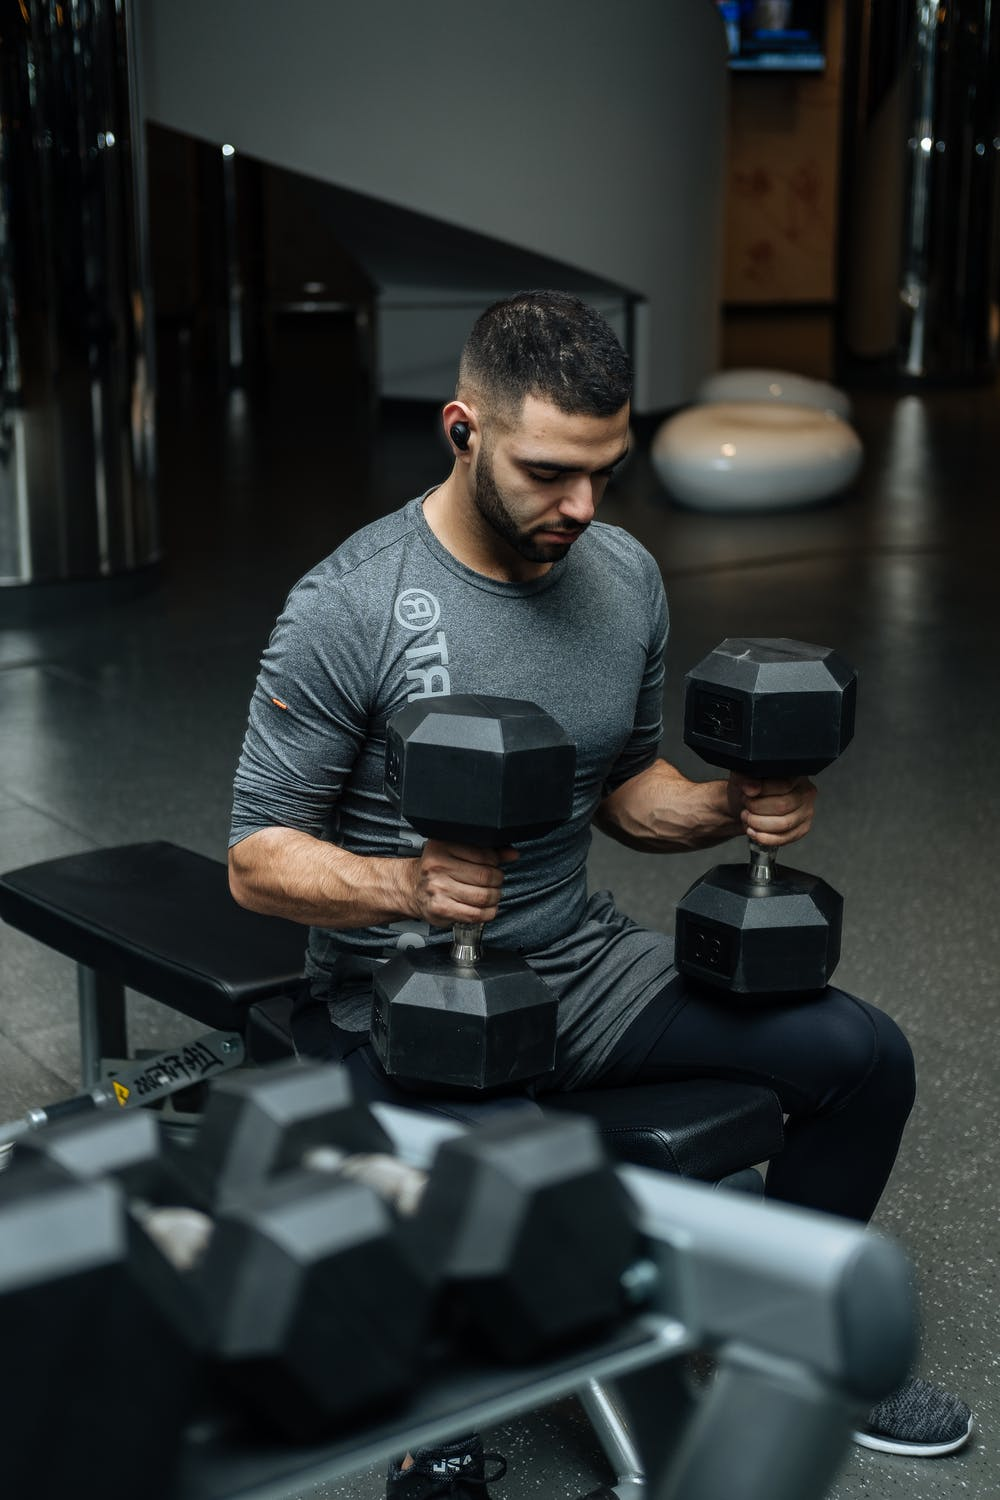 man sitting on workout bench with 2 dumbbells getting mentally prepared to lift